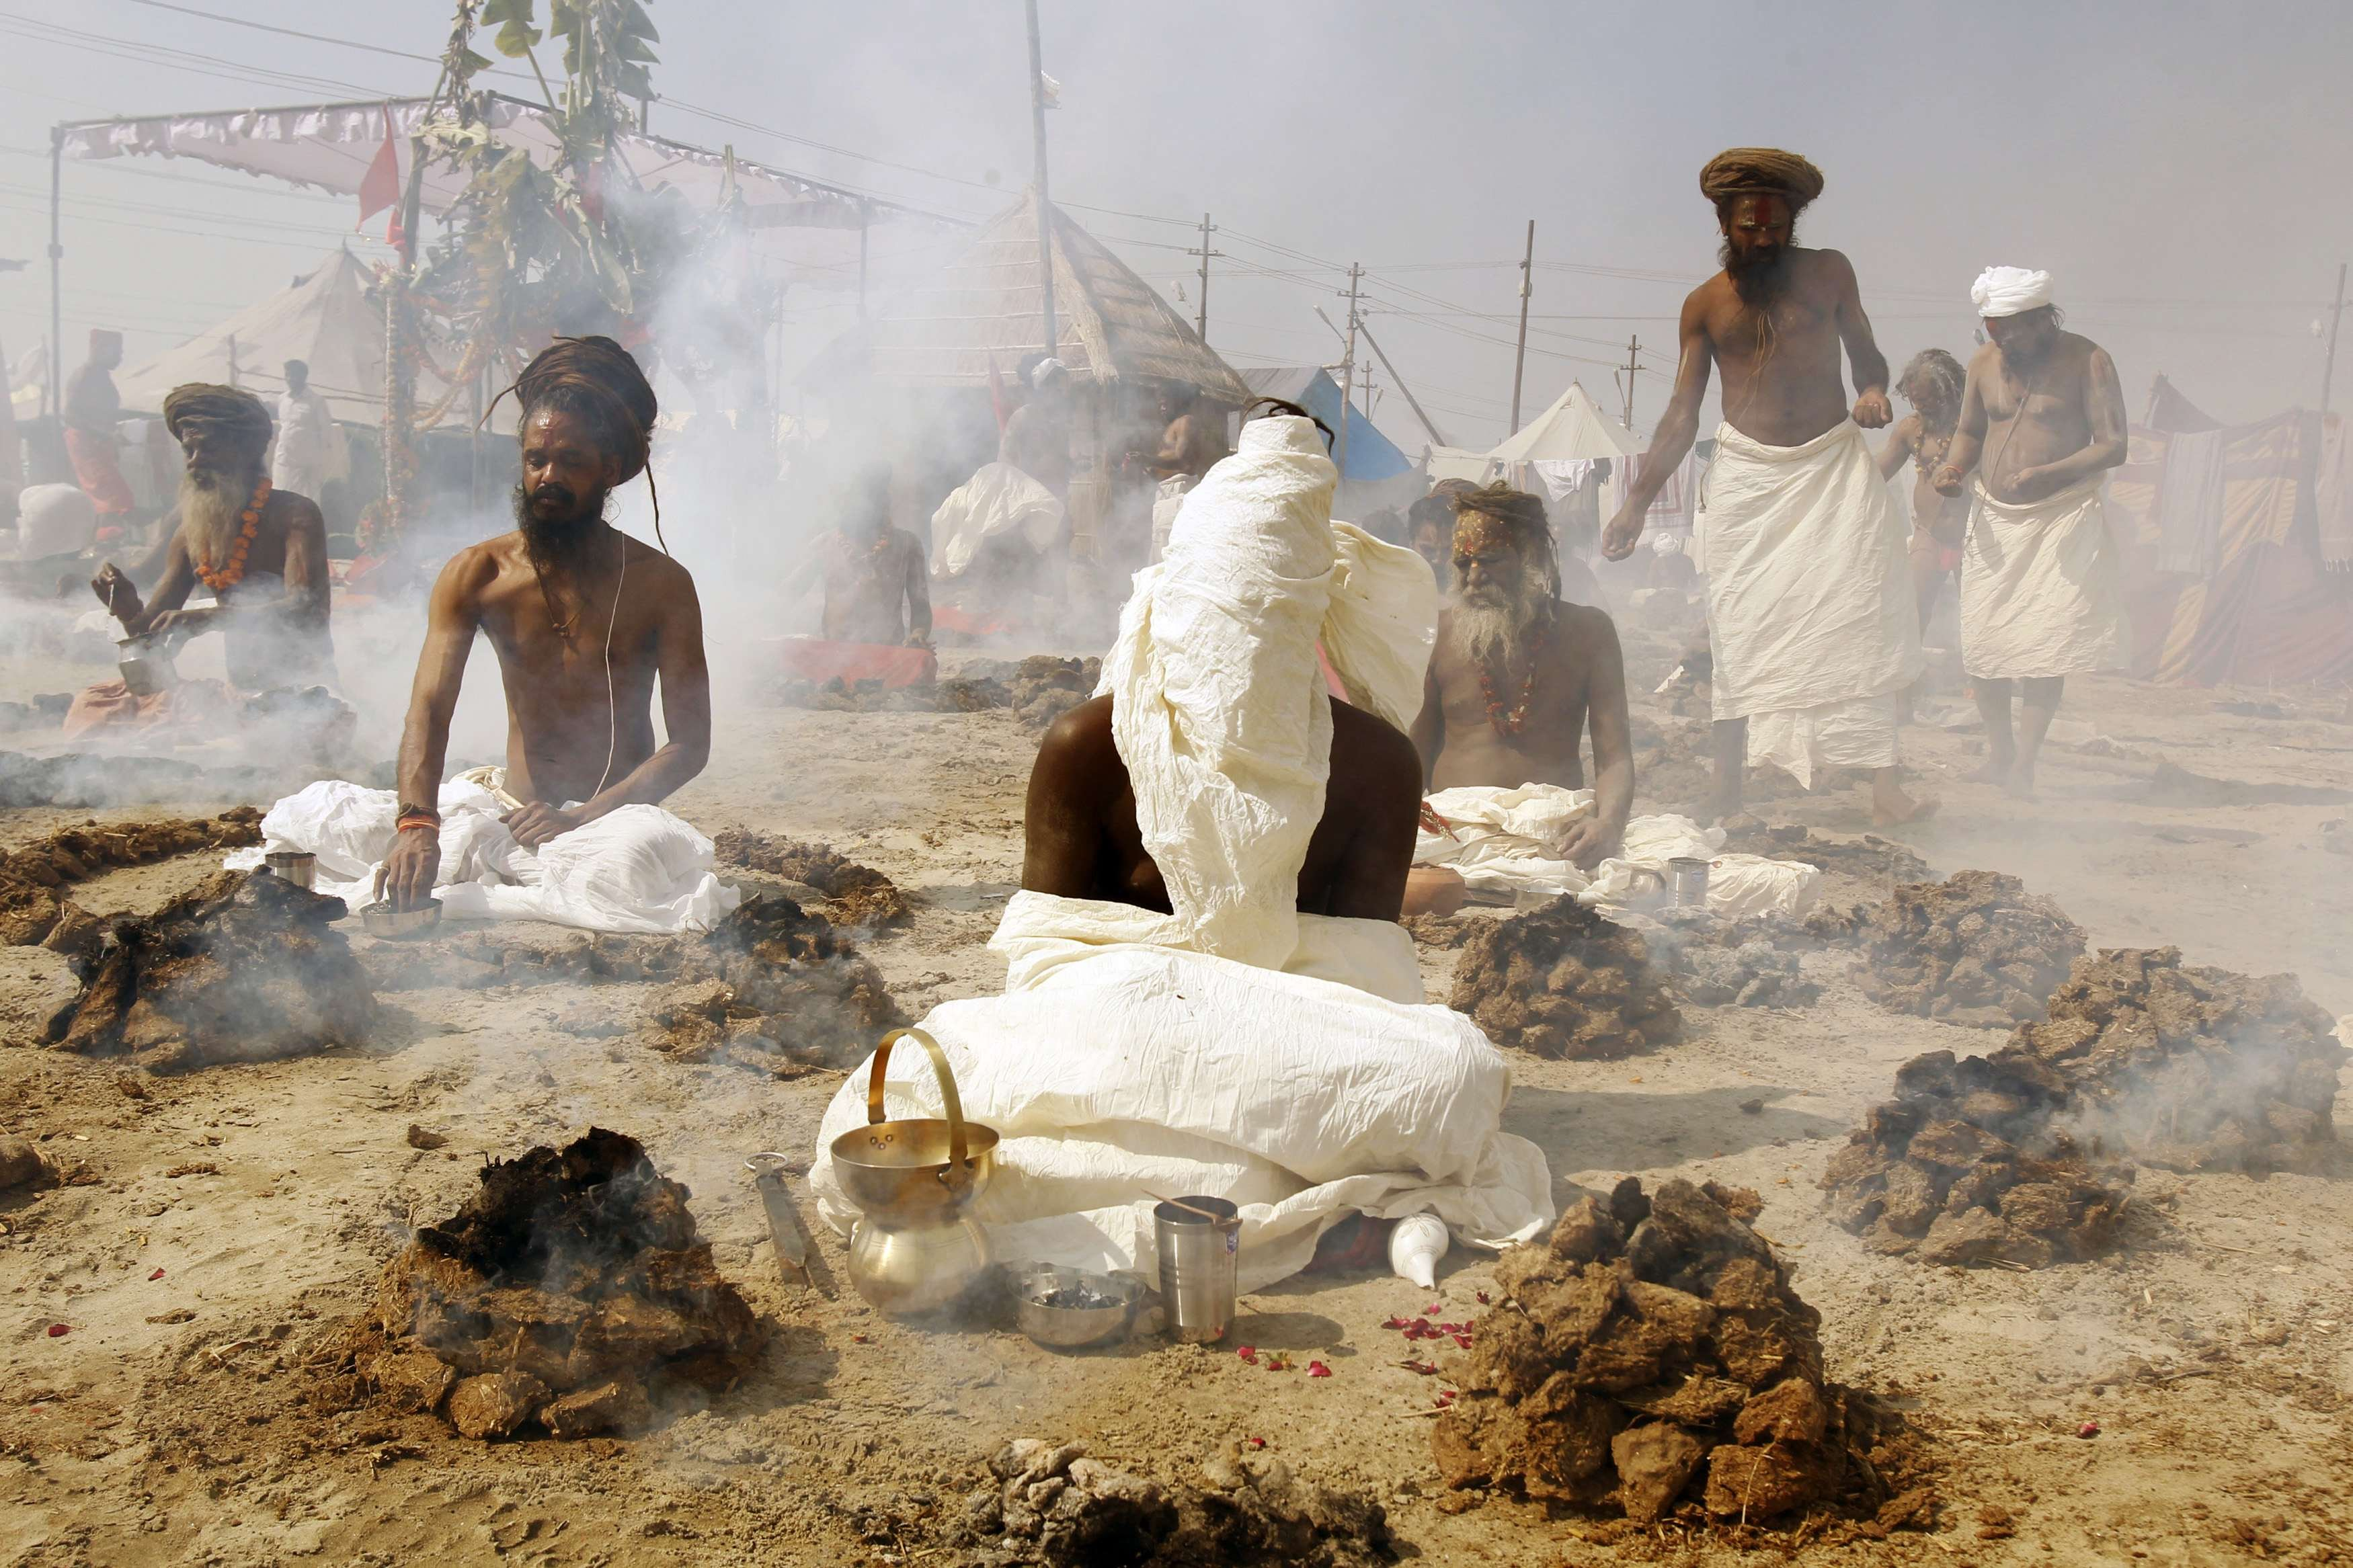 Sadhus, or Hindu holy men, perform prayers while sitting inside circles of burning  Upale  (or dried cow dung cakes) on the banks of the river Ganges during the Magh Mela festival in the northern Indian city of Allahabad Feb. 4, 2014.